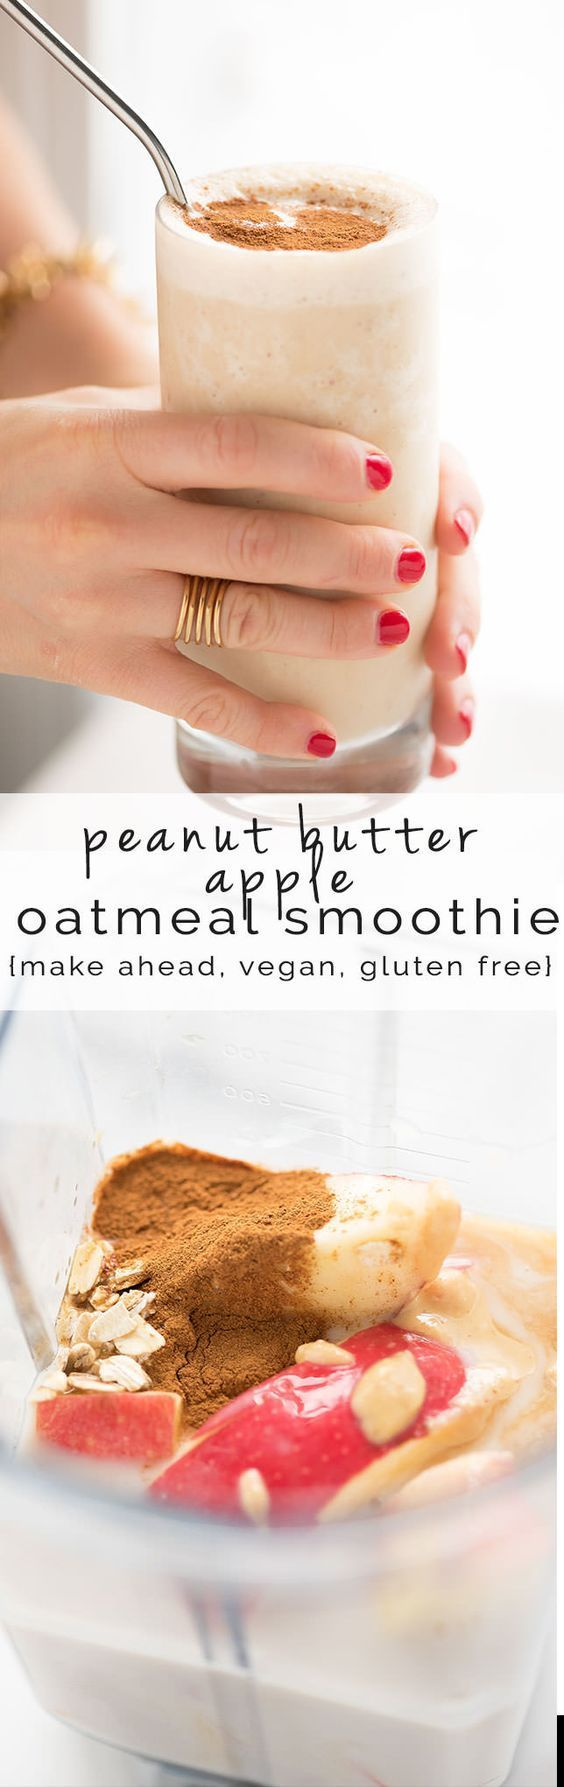 Apple Oatmeal Smoothie Recipes is easy, healthy filled with Peanut Butter. {Breakfast, Vegan, instant, cinnamon, Weightloss, Fruit, Skinny, Protein}